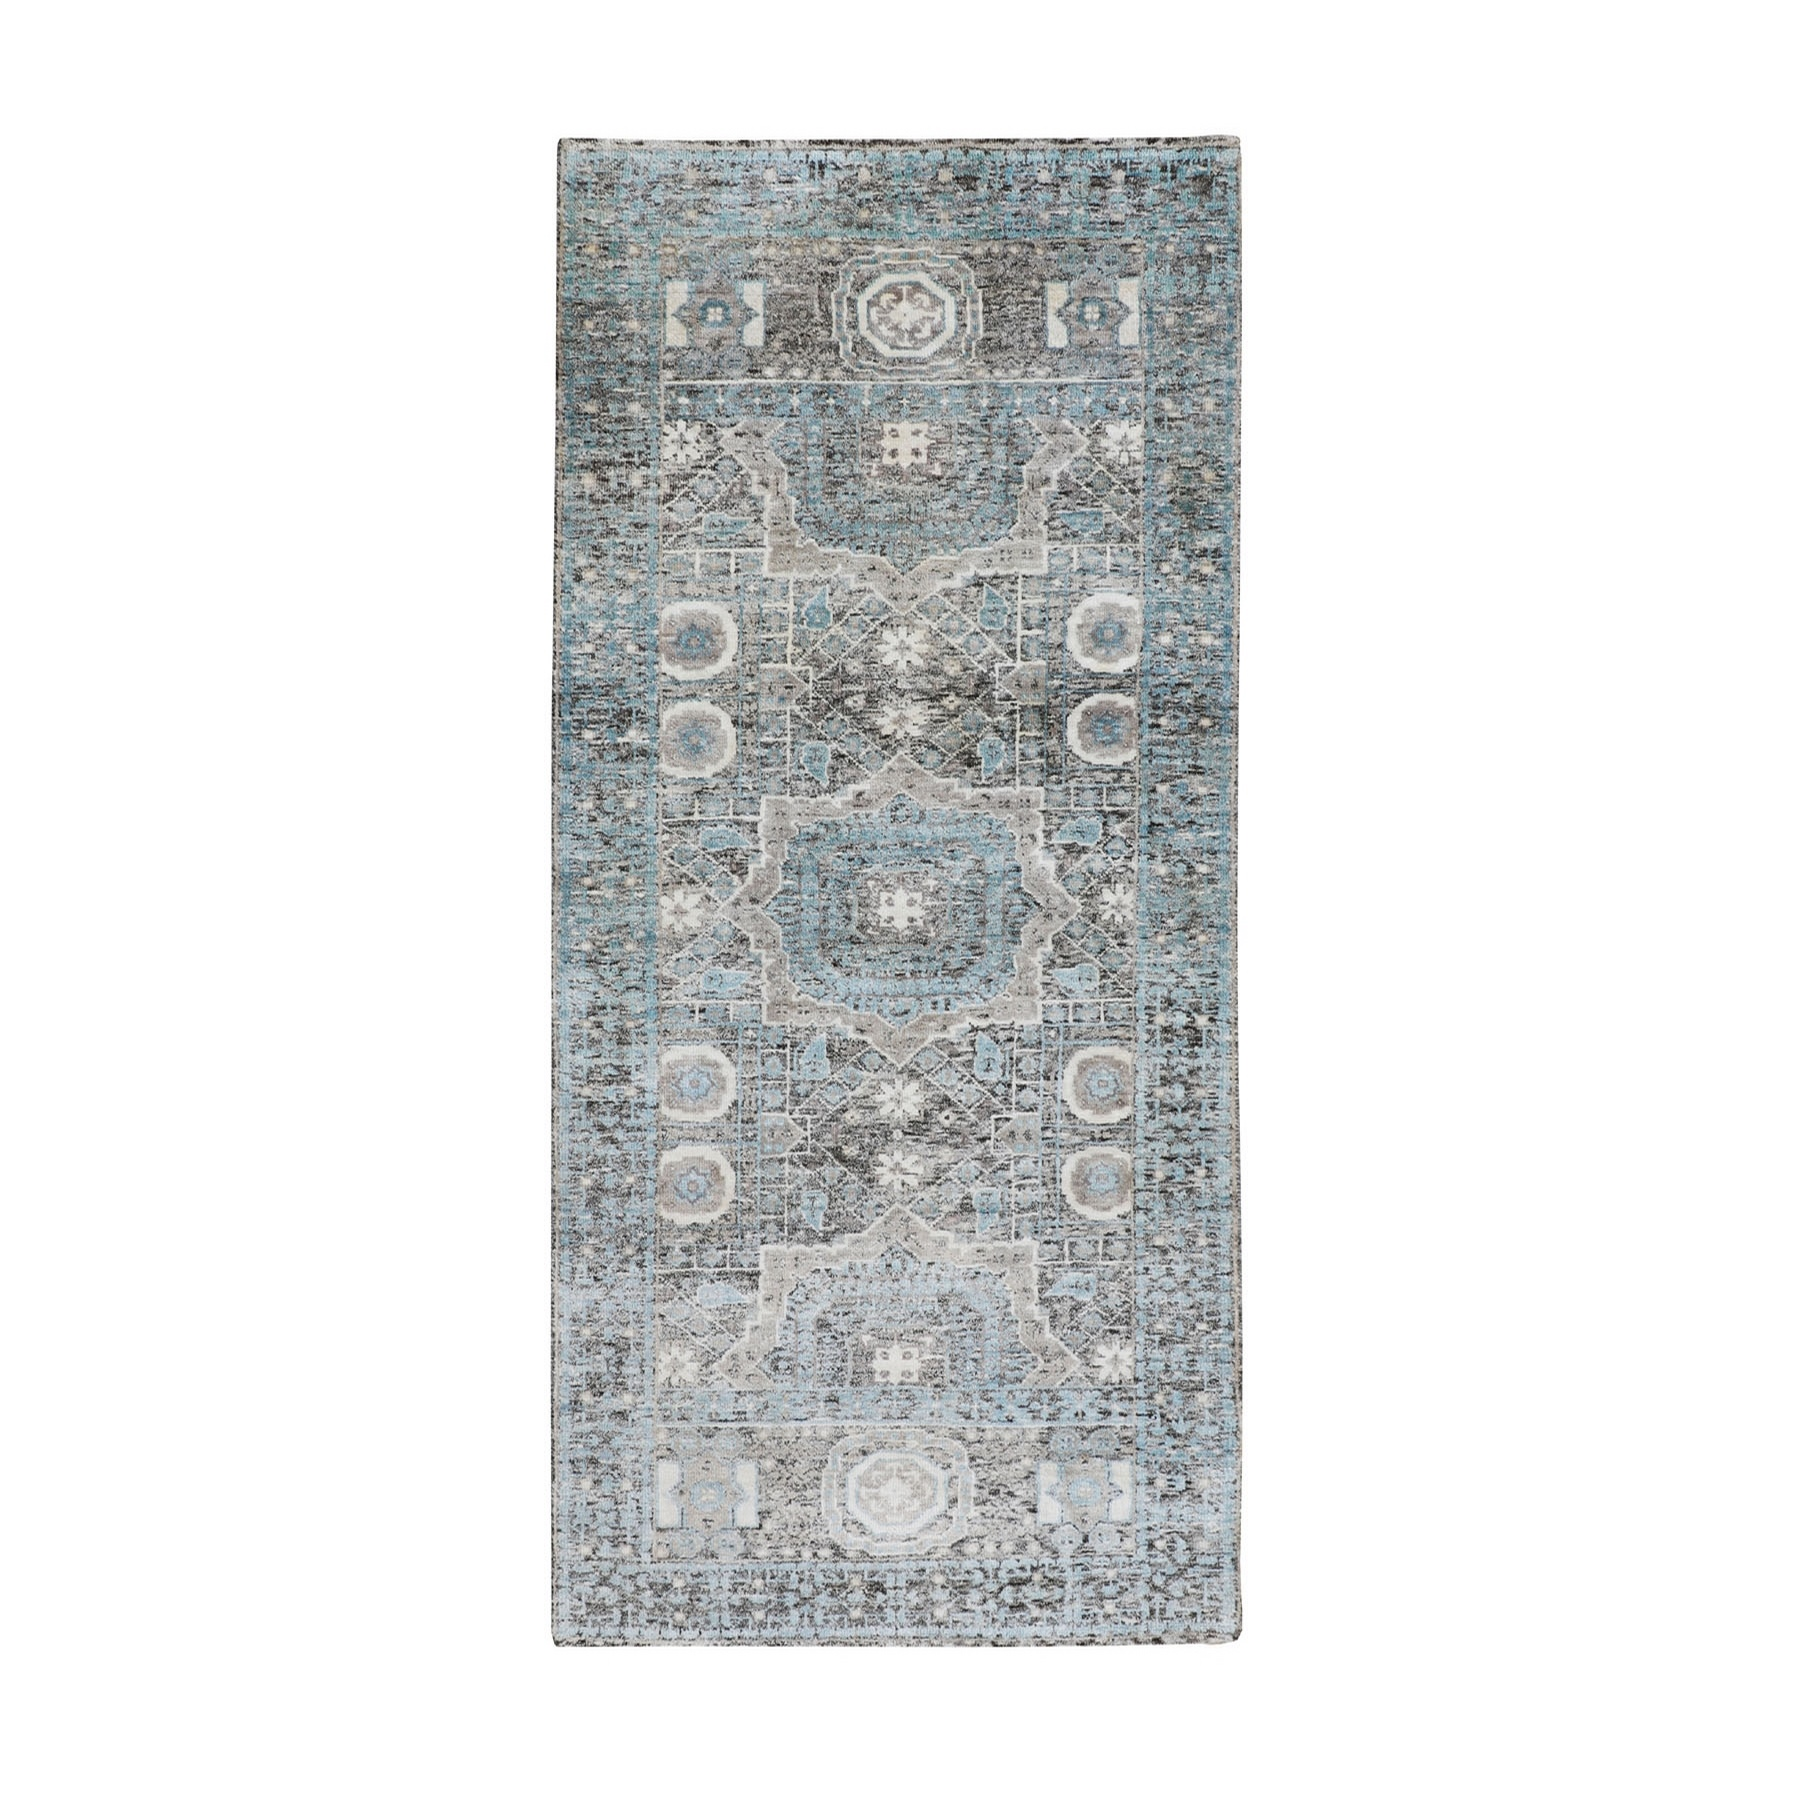 """2'8""""X6'1"""" Silk With Textured Wool Hi-Low Pile Mamluk Design Runner Hand Knotted Oriental Rug moae8a8a"""